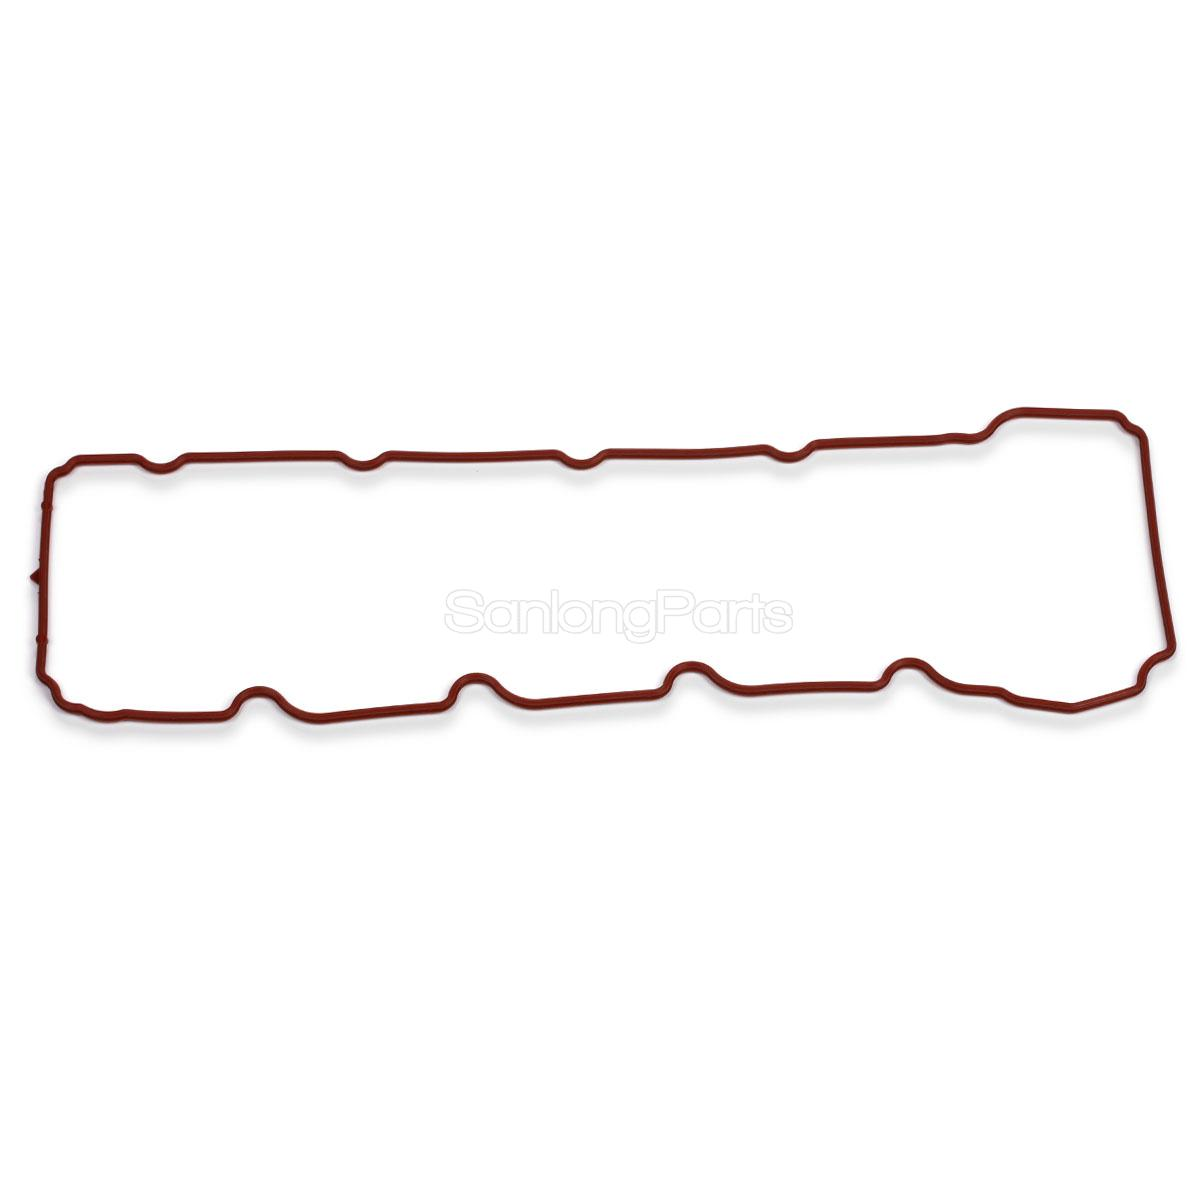 For Dodge Dakota Durango 99 03 4 7 Valve Cover Gaskets